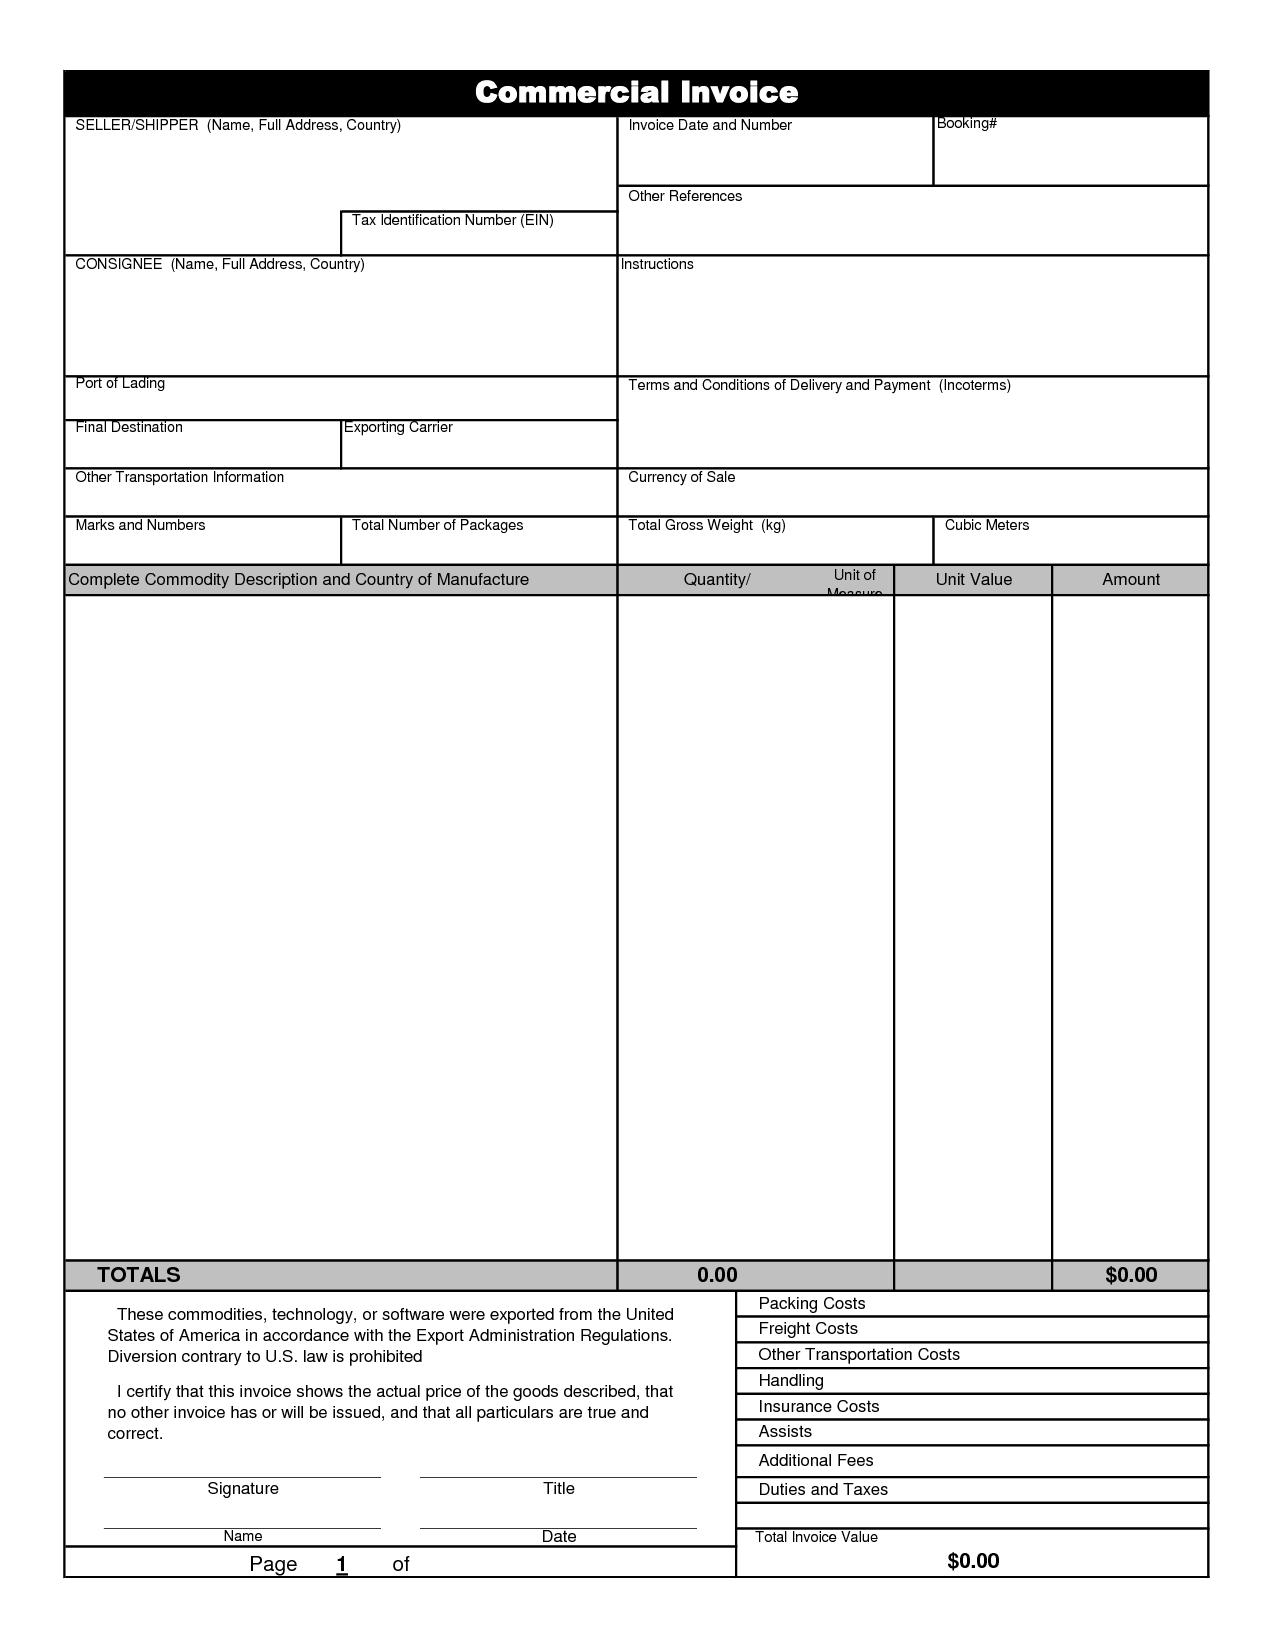 Commercial Invoice Template Excel Download